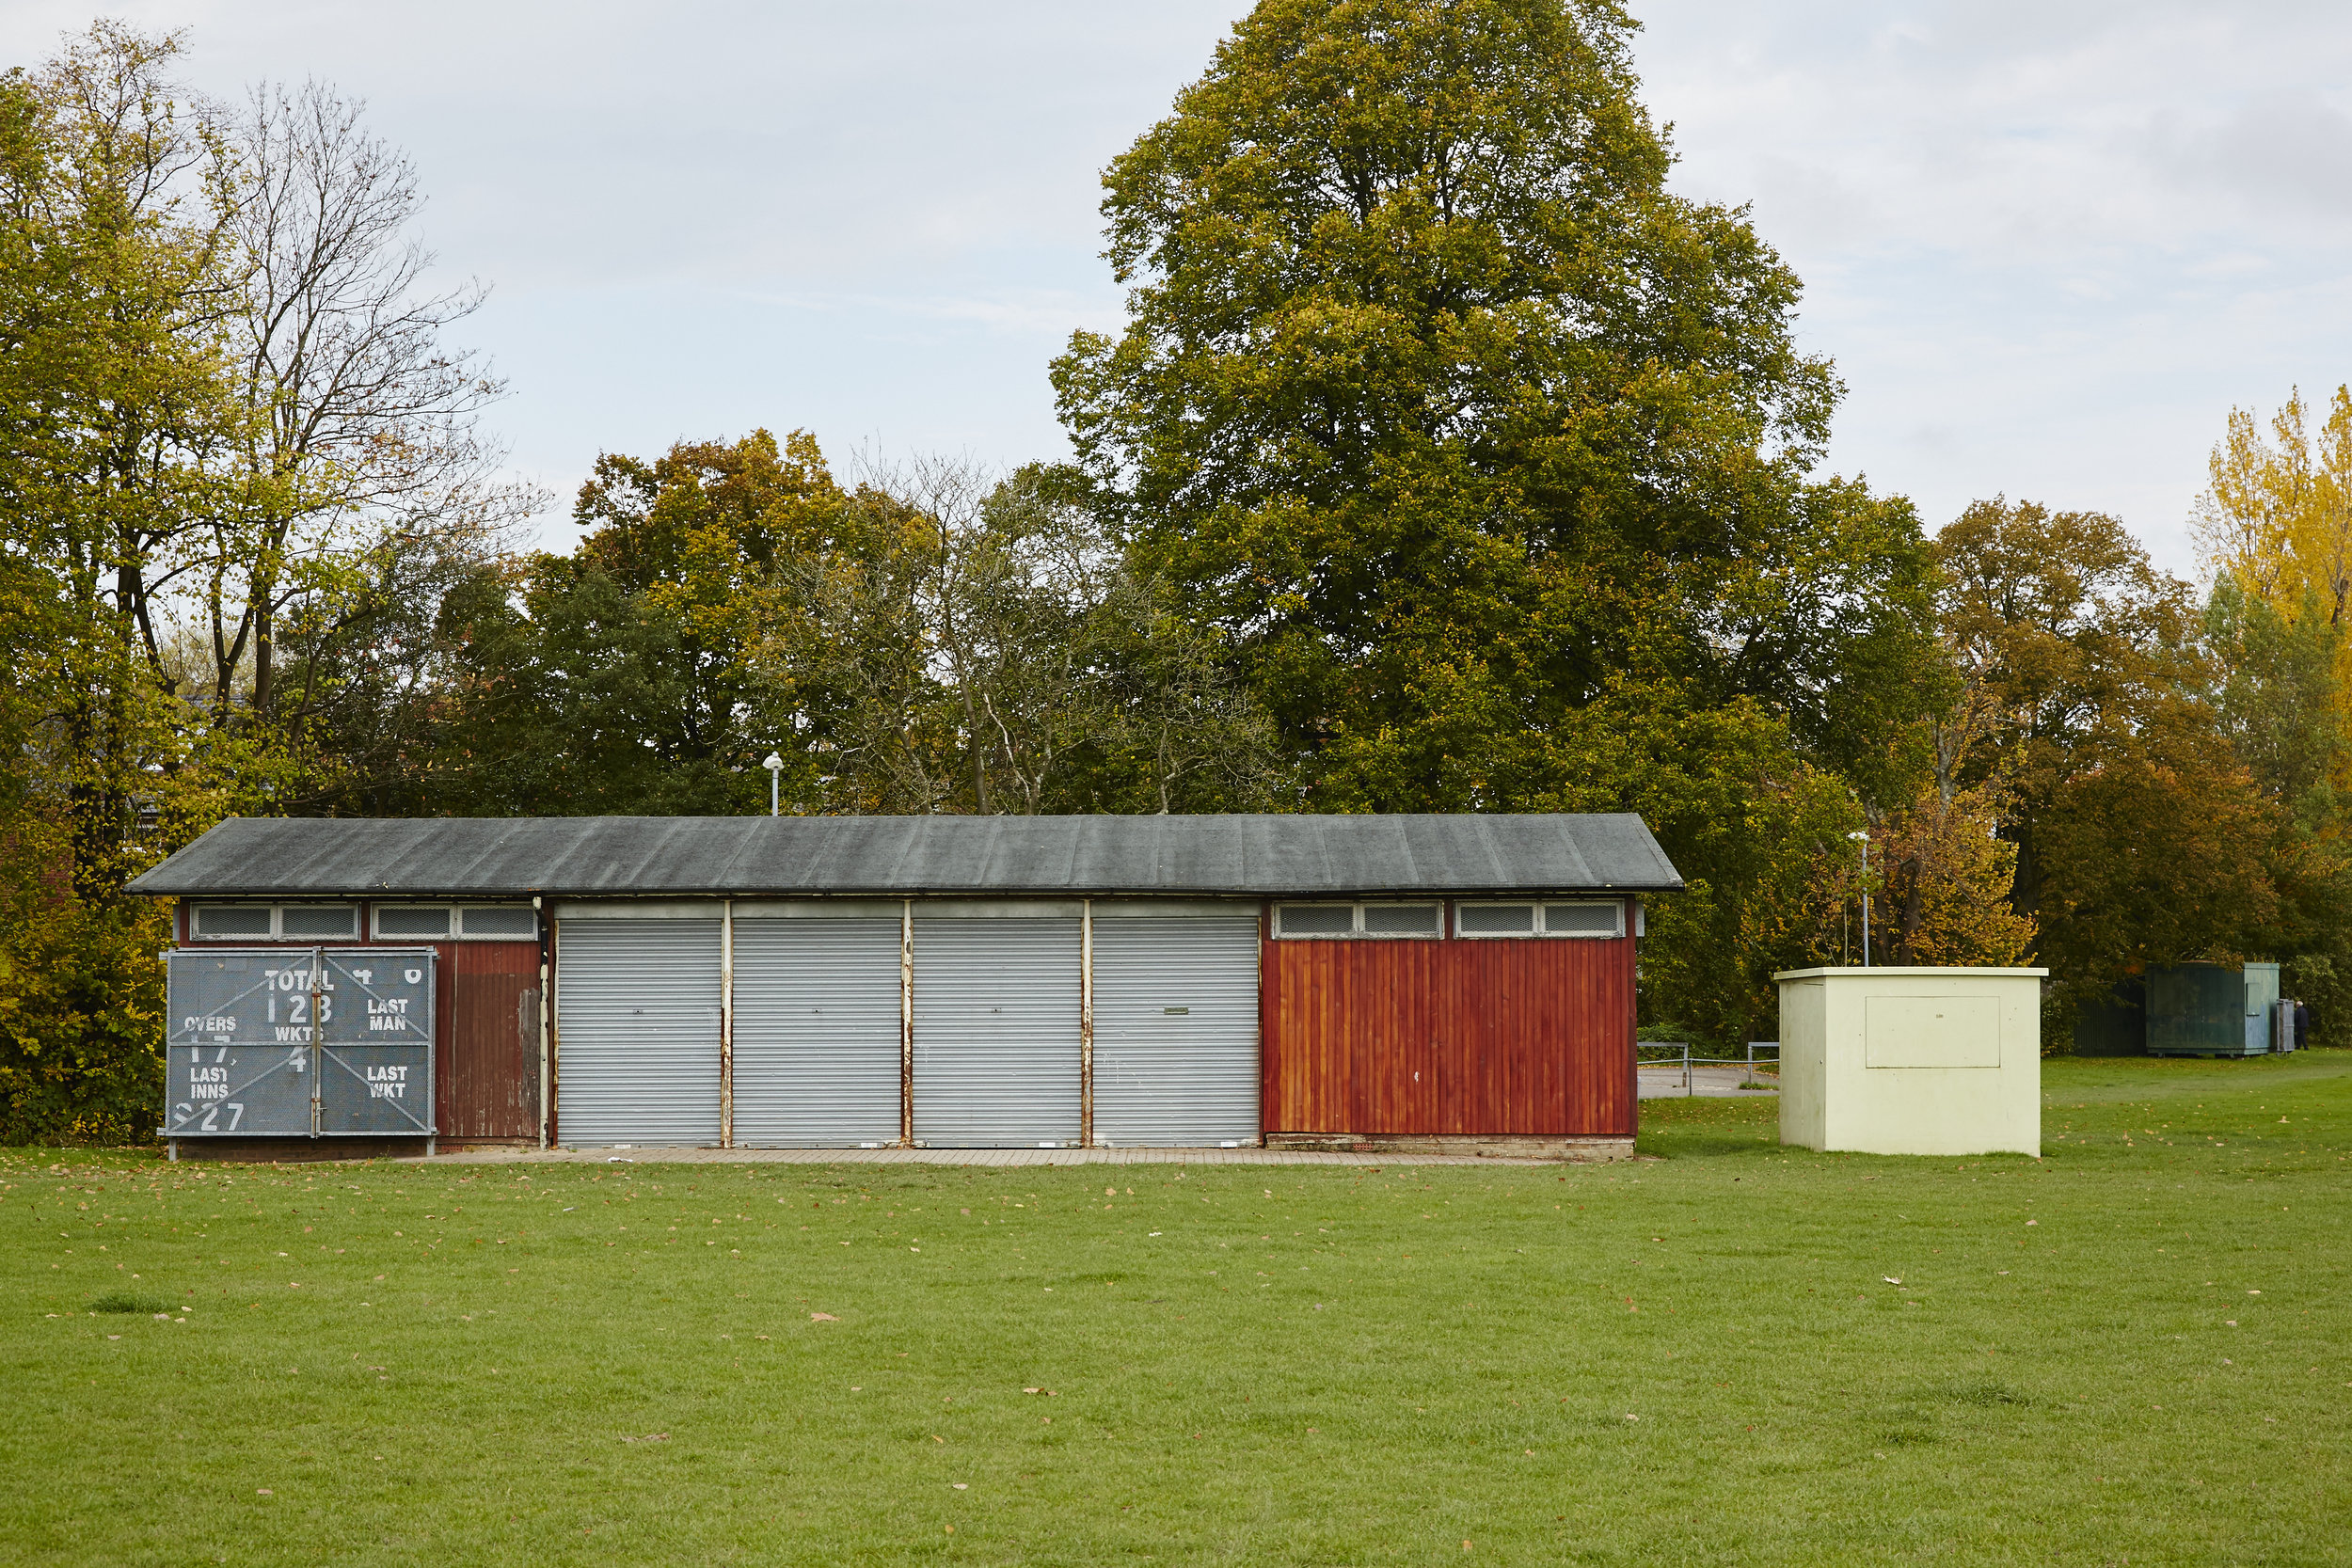 Existing pavilion and scoring huts